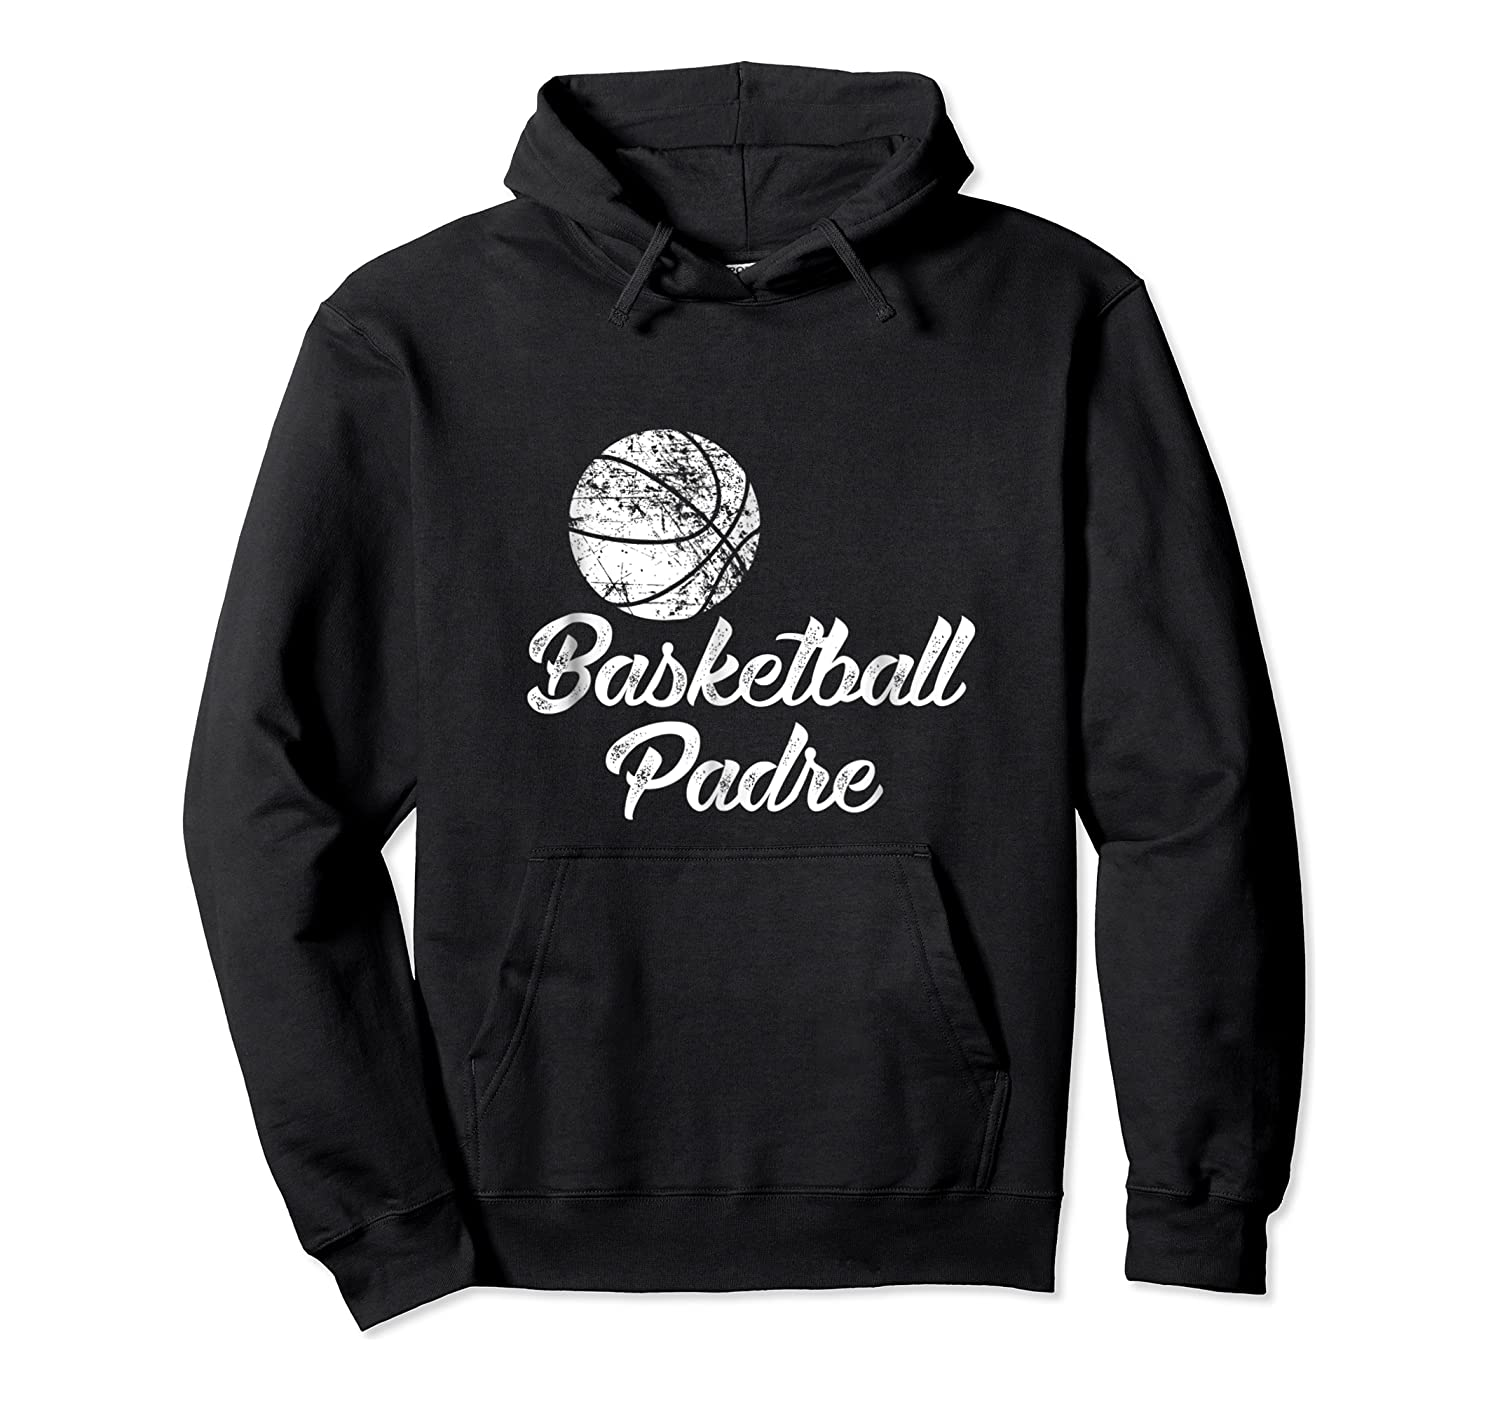 Basketball Padre, Cute Funny Player Fan Gift Shirts Unisex Pullover Hoodie